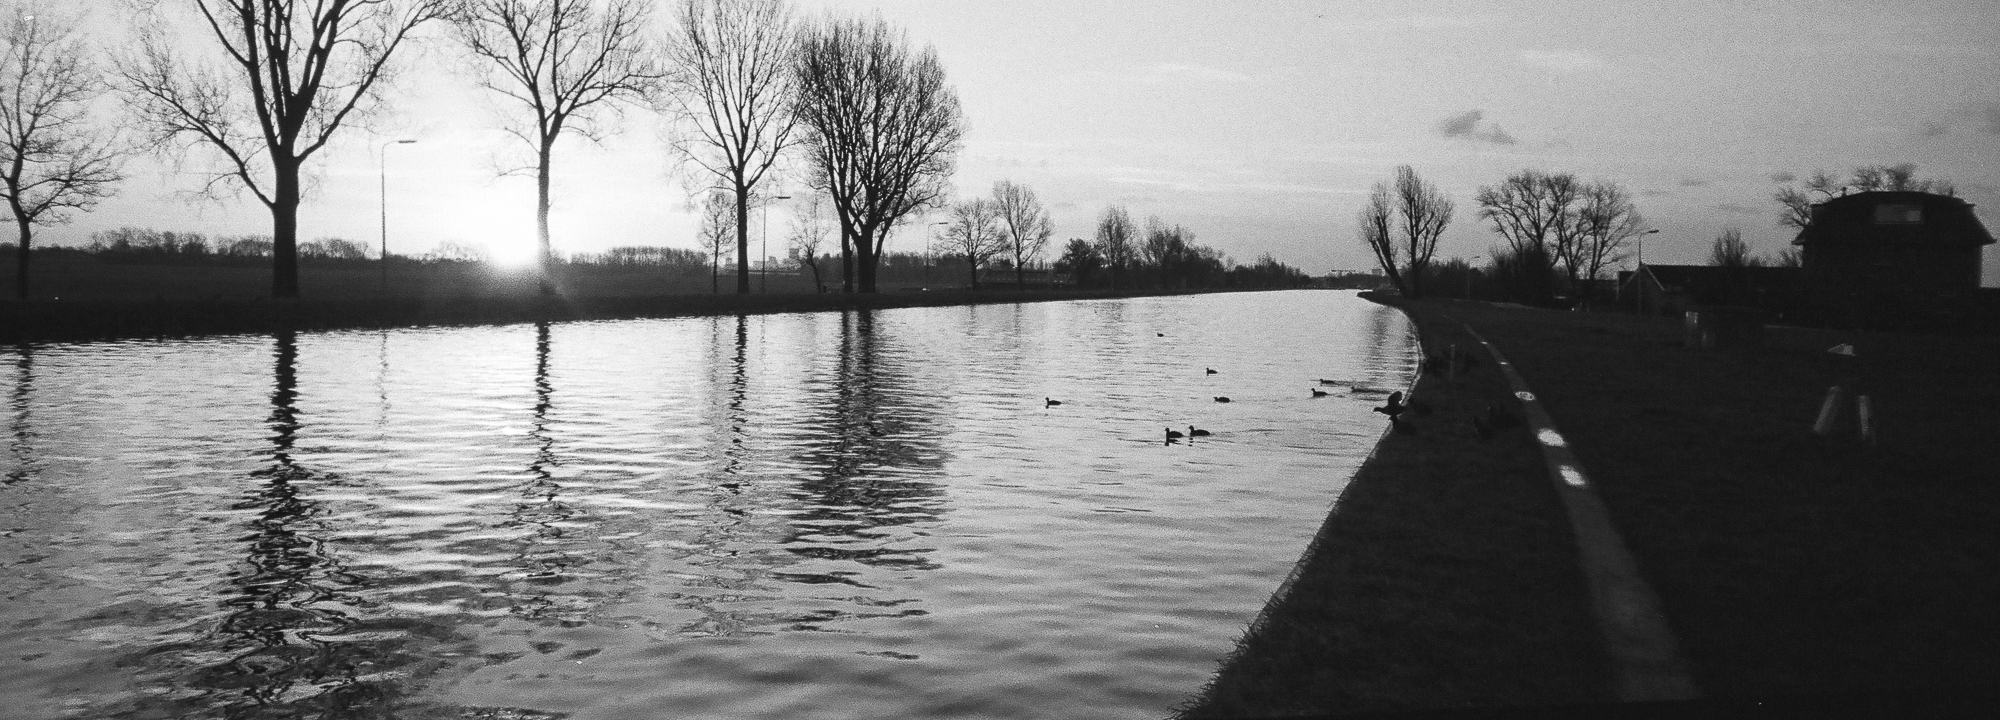 Landscape with trees photographed with Minolta Riva Panorama on Kodak Tri-X 400